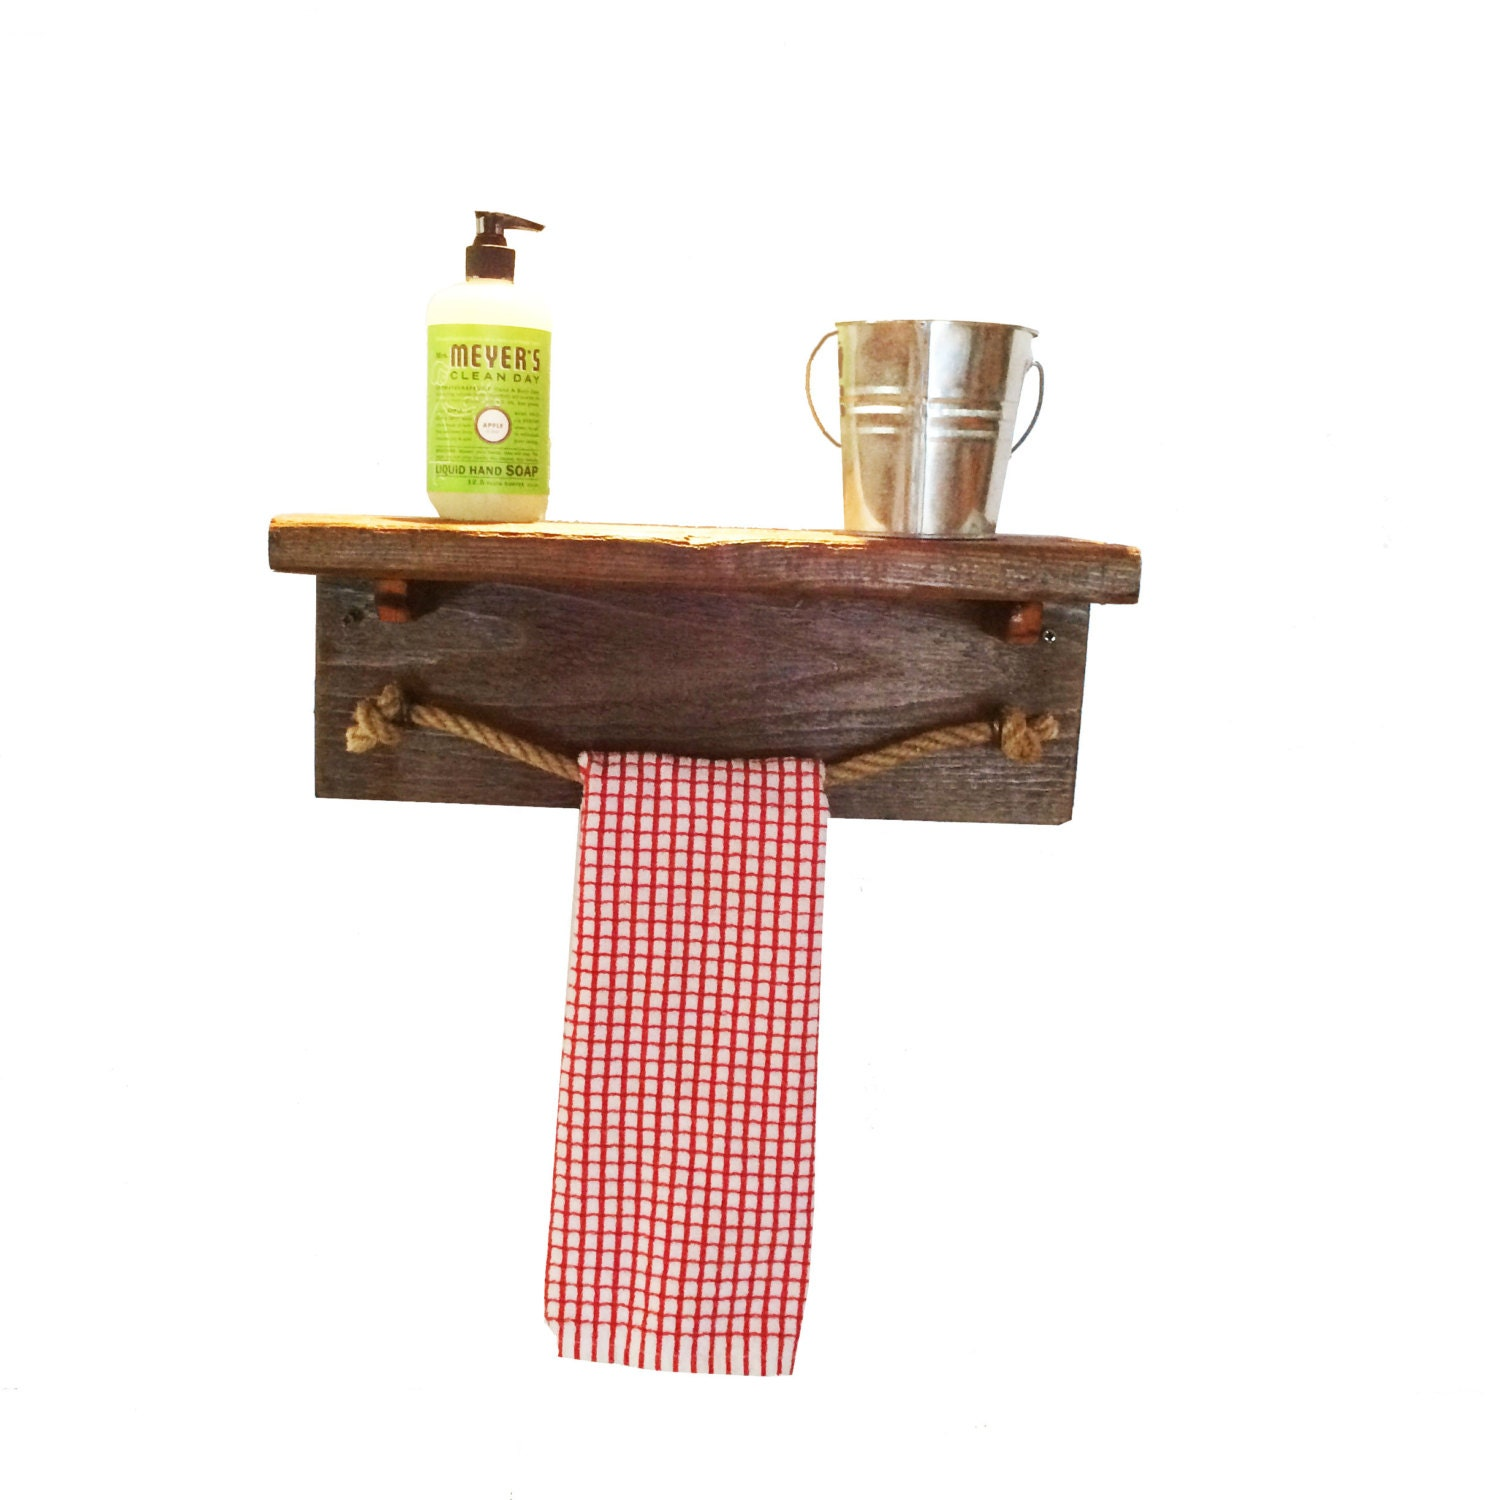 Very Impressive portraiture of Rustic wood shelf and rope towel bar sized 17 by LakesideWoodcraft with #95A12A color and 1500x1500 pixels